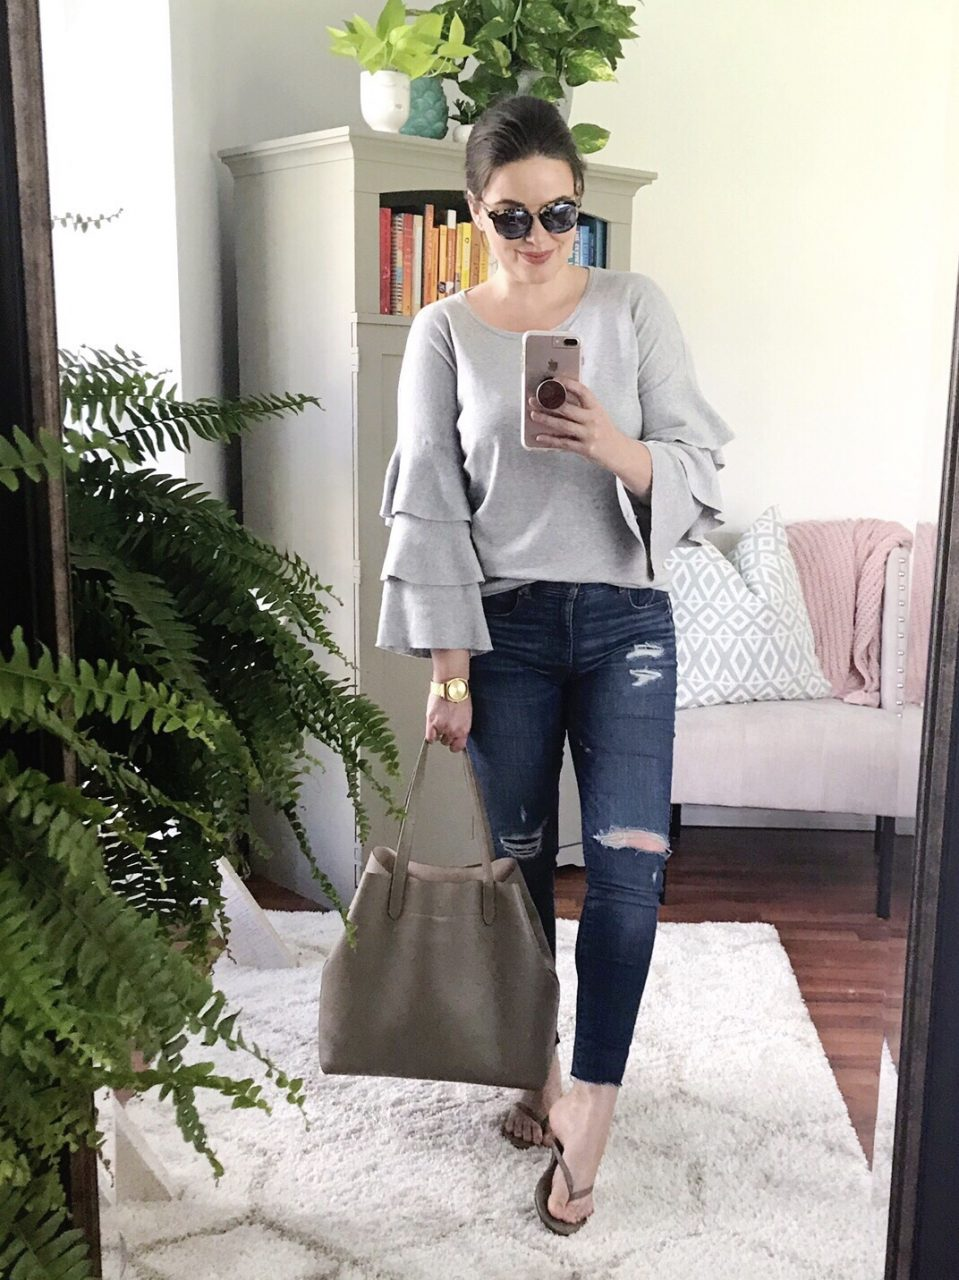 Style blogger wearing gray ruffle-sleeve sweater with distressed LOFT skinny jeans and TKEES gray leather flip flops, carrying Cuyana structured leather tote bag.